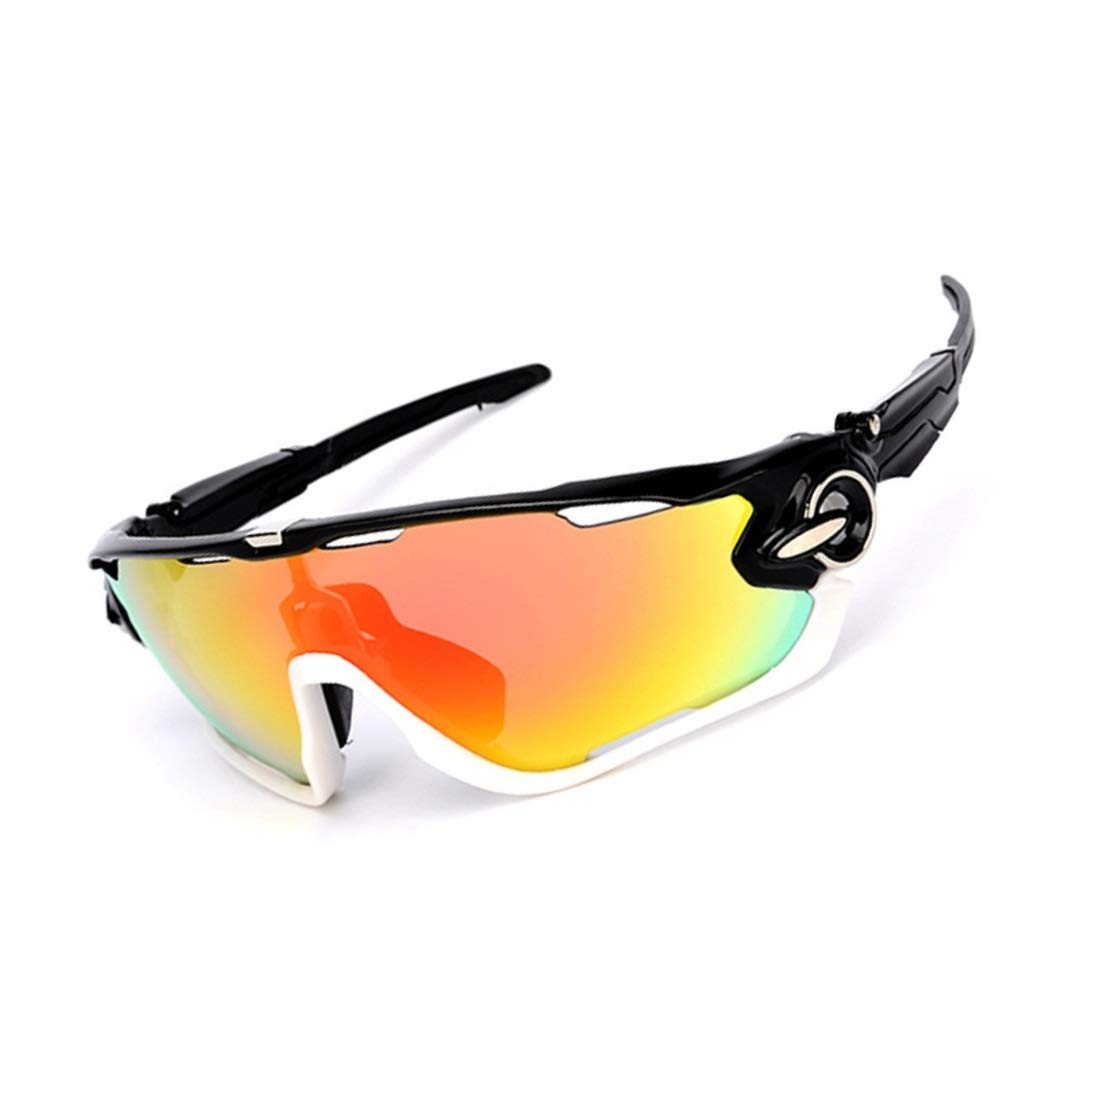 BAOYIT Men and Women Goggles Polarized Sunglasses Outdoor Riding Glasses Sports (Color : K) by BAOYIT